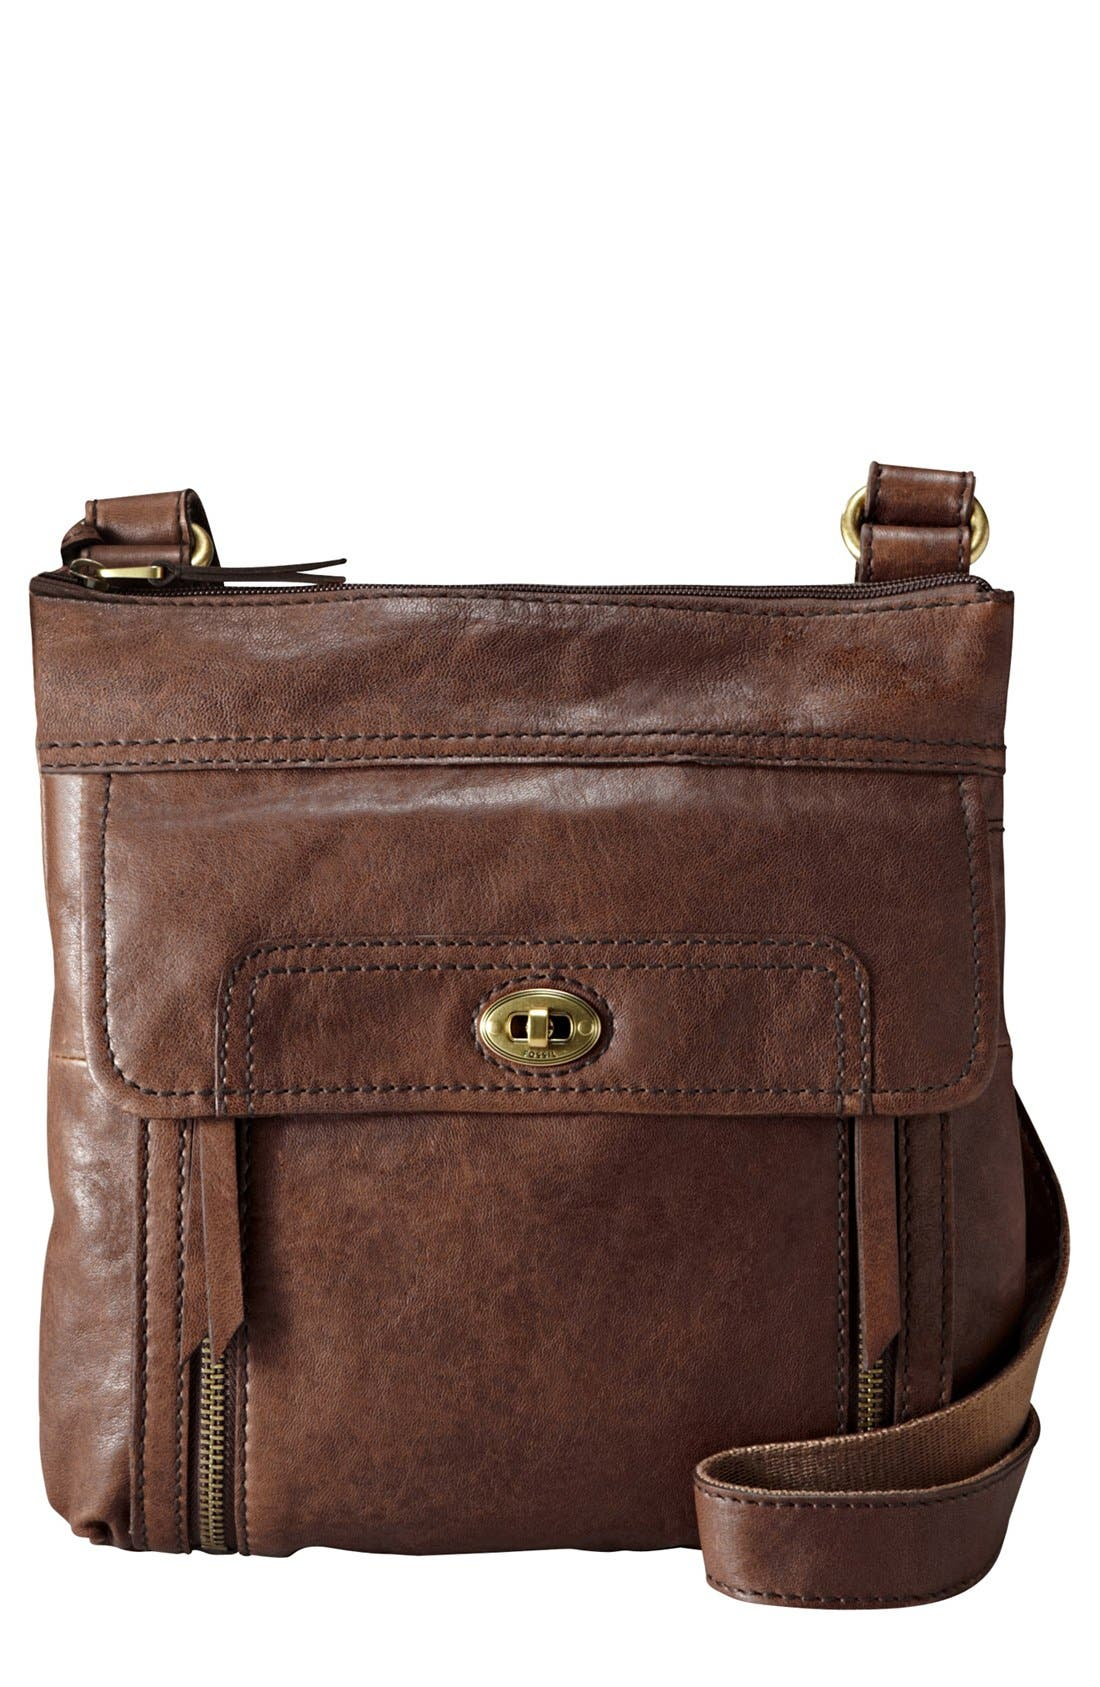 Main Image - Fossil 'Stanton Traveler' Crossbody Bag